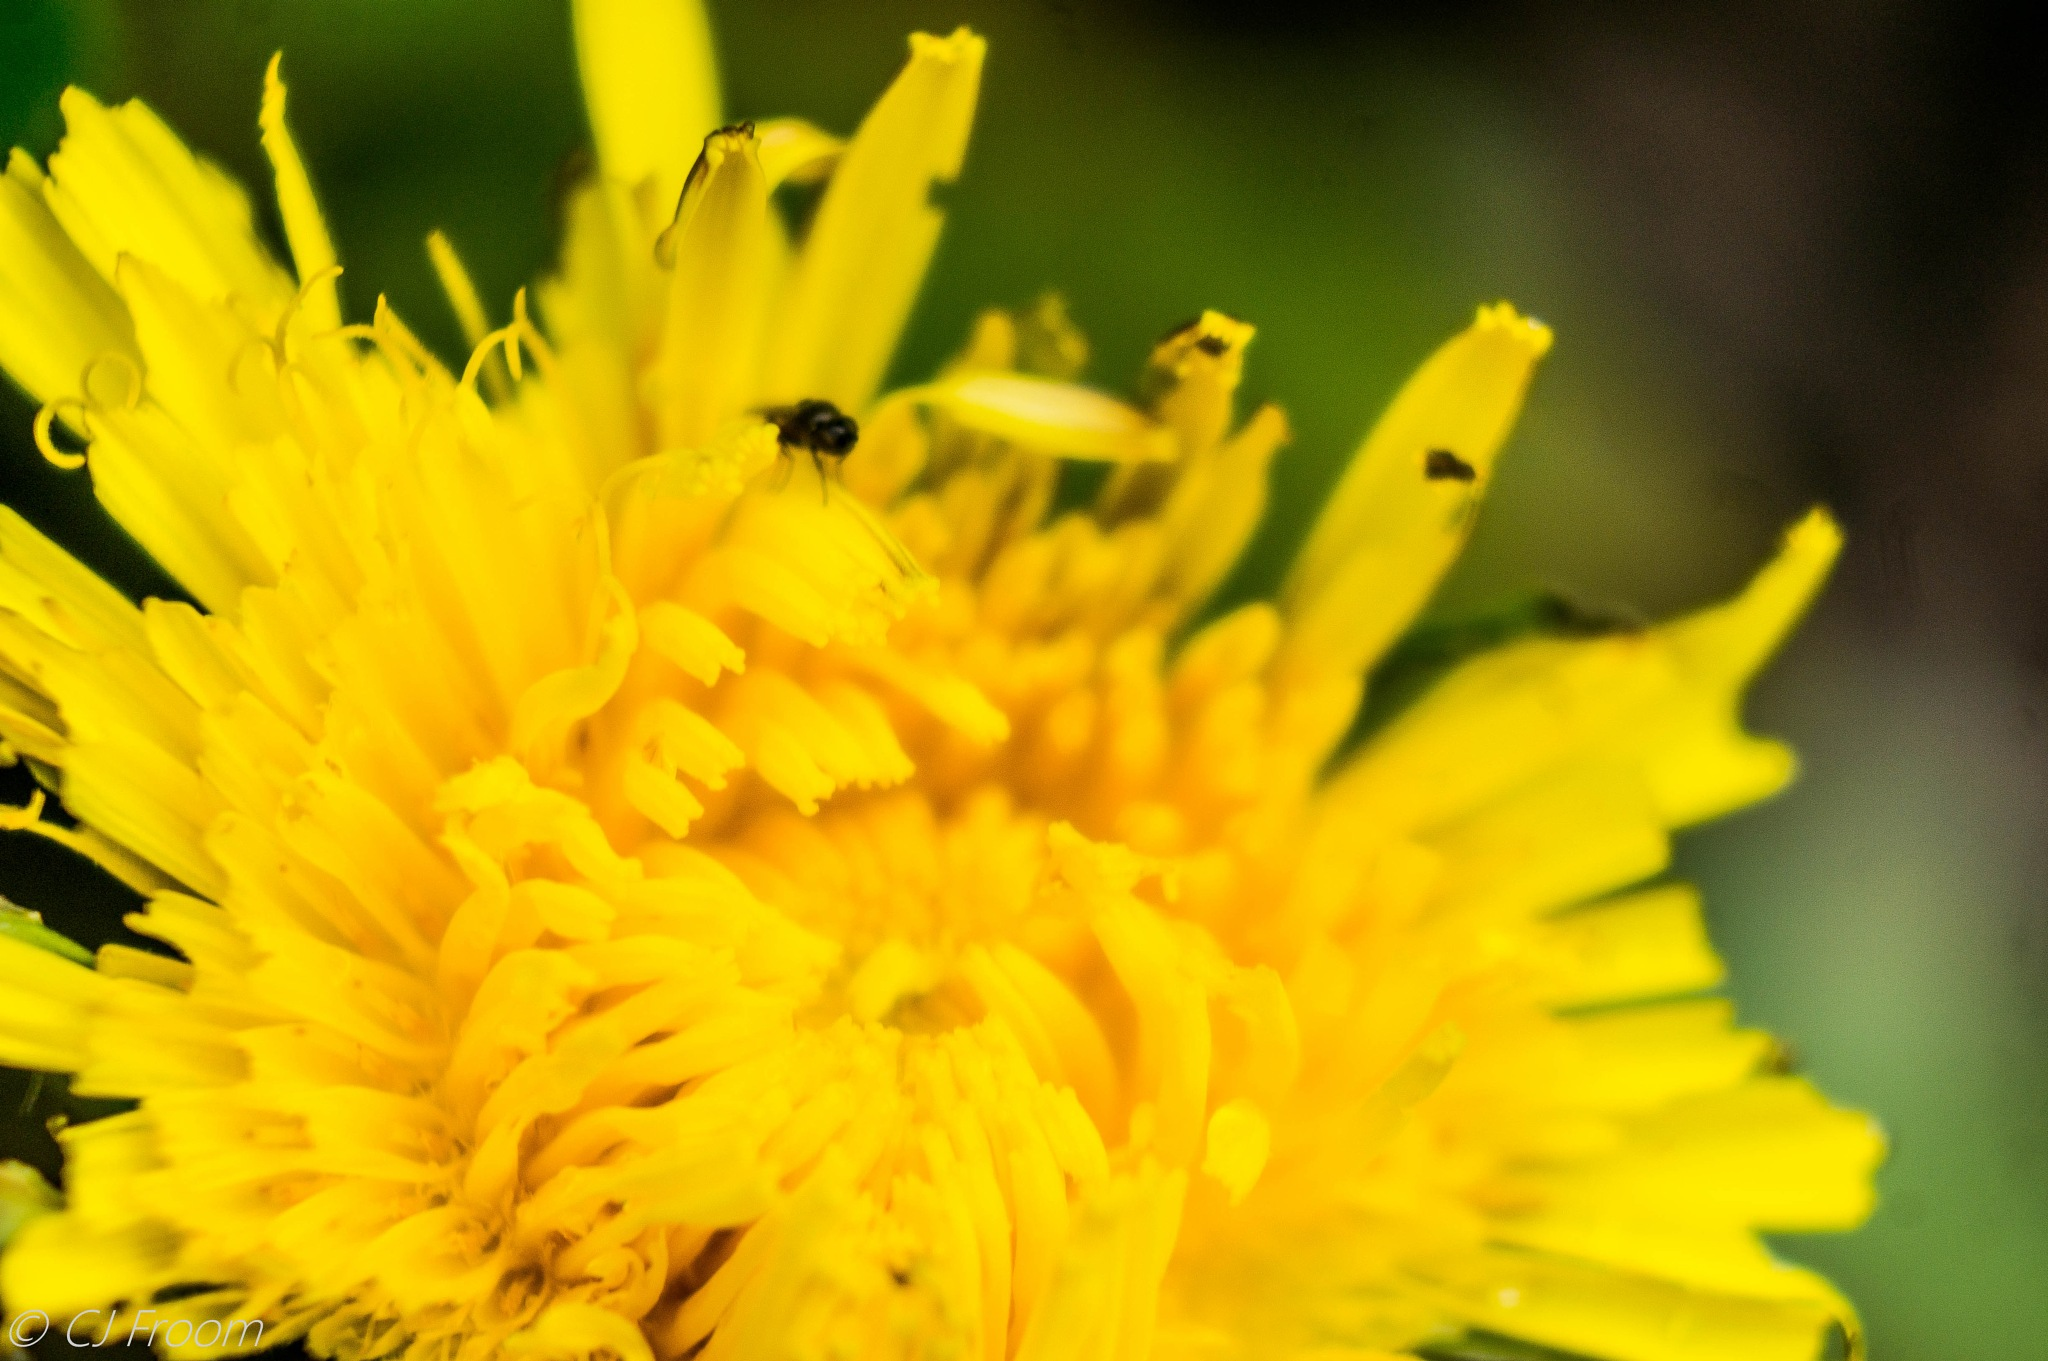 Dandelion with a visitor by Cj Froom